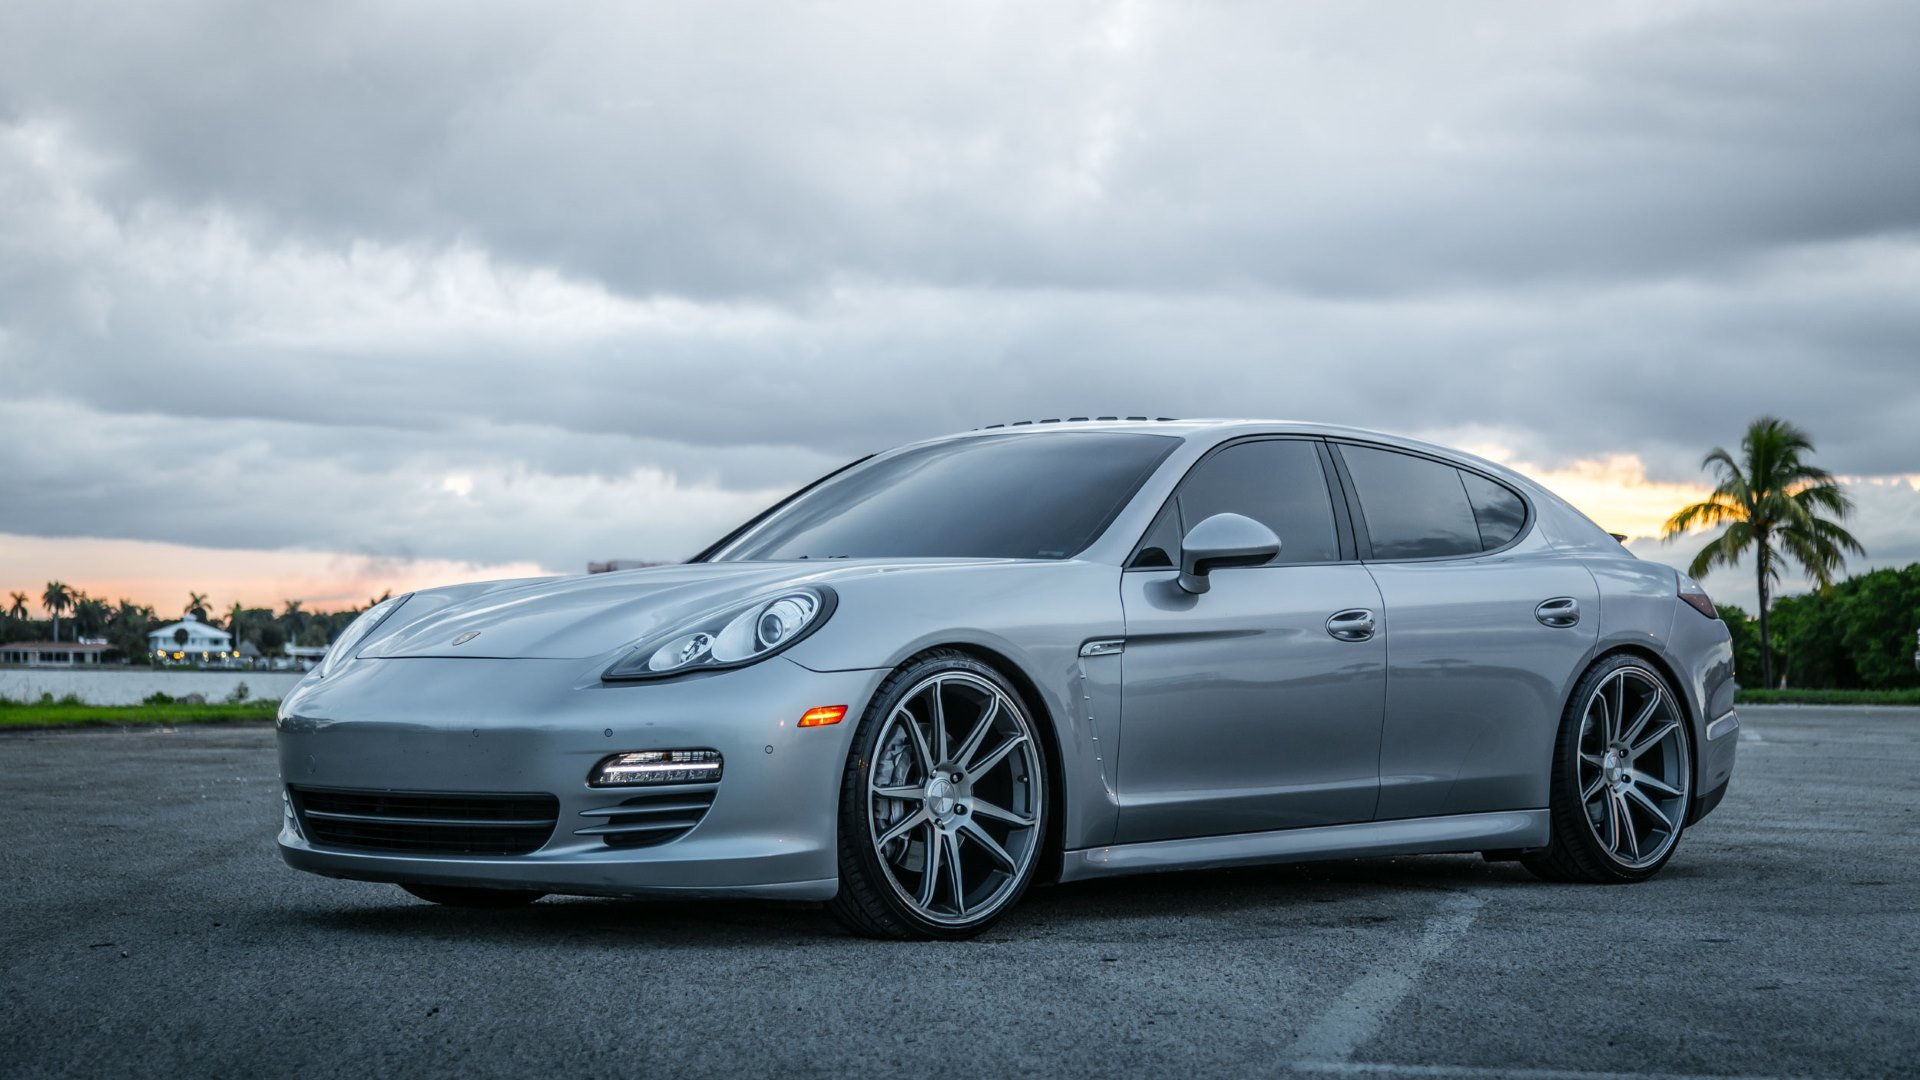 Awesome Porsche Panamera free background ID:27805 for full hd PC